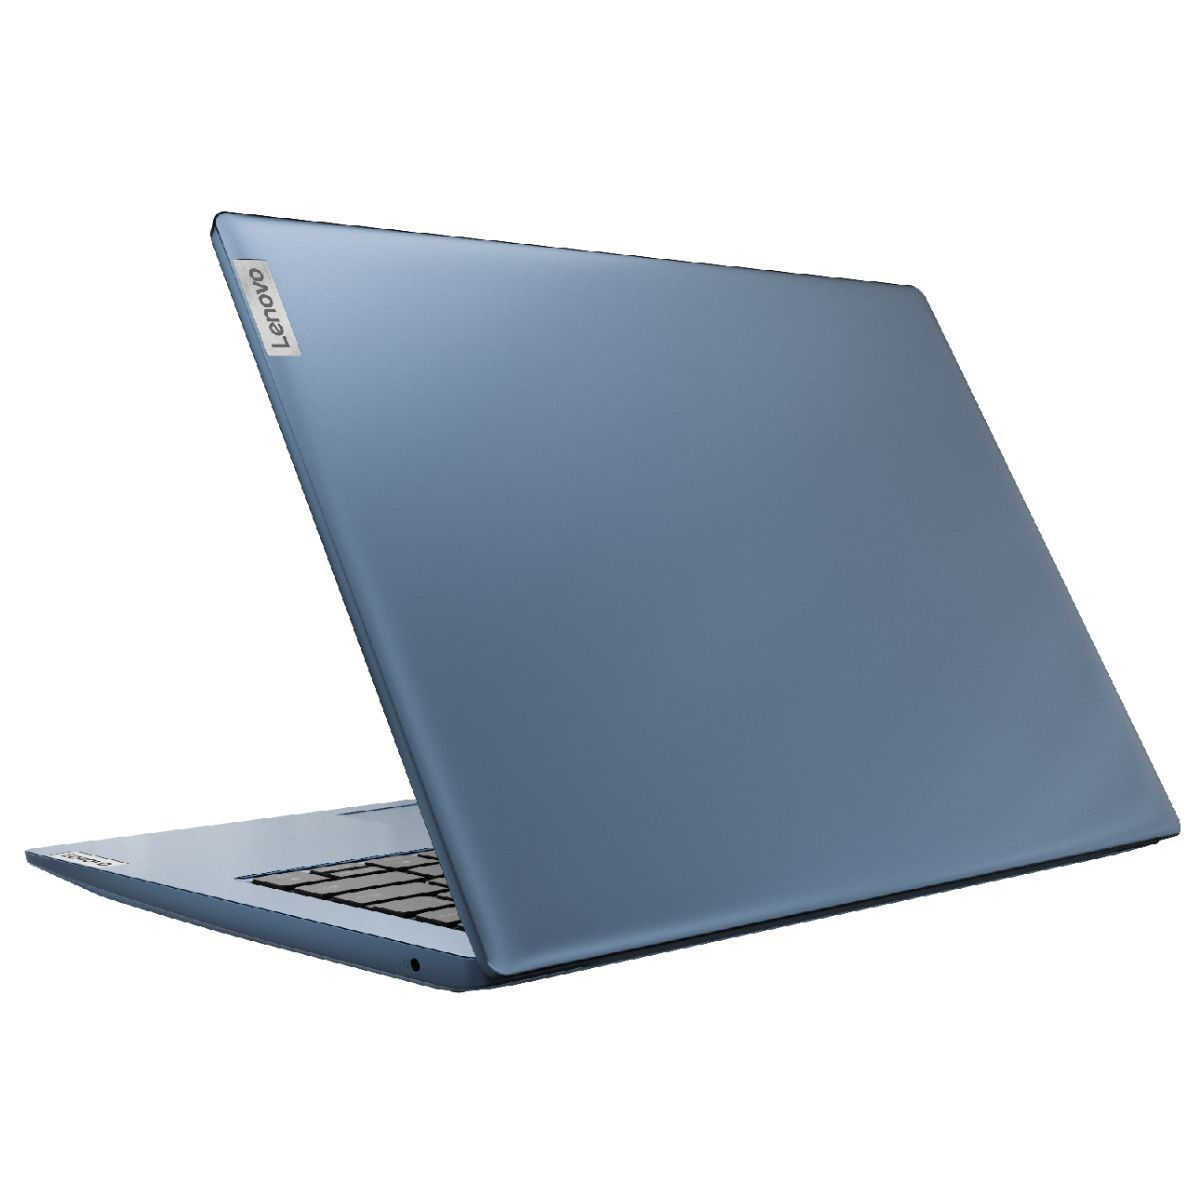 Notebook Lenovo S150 a4 9120e